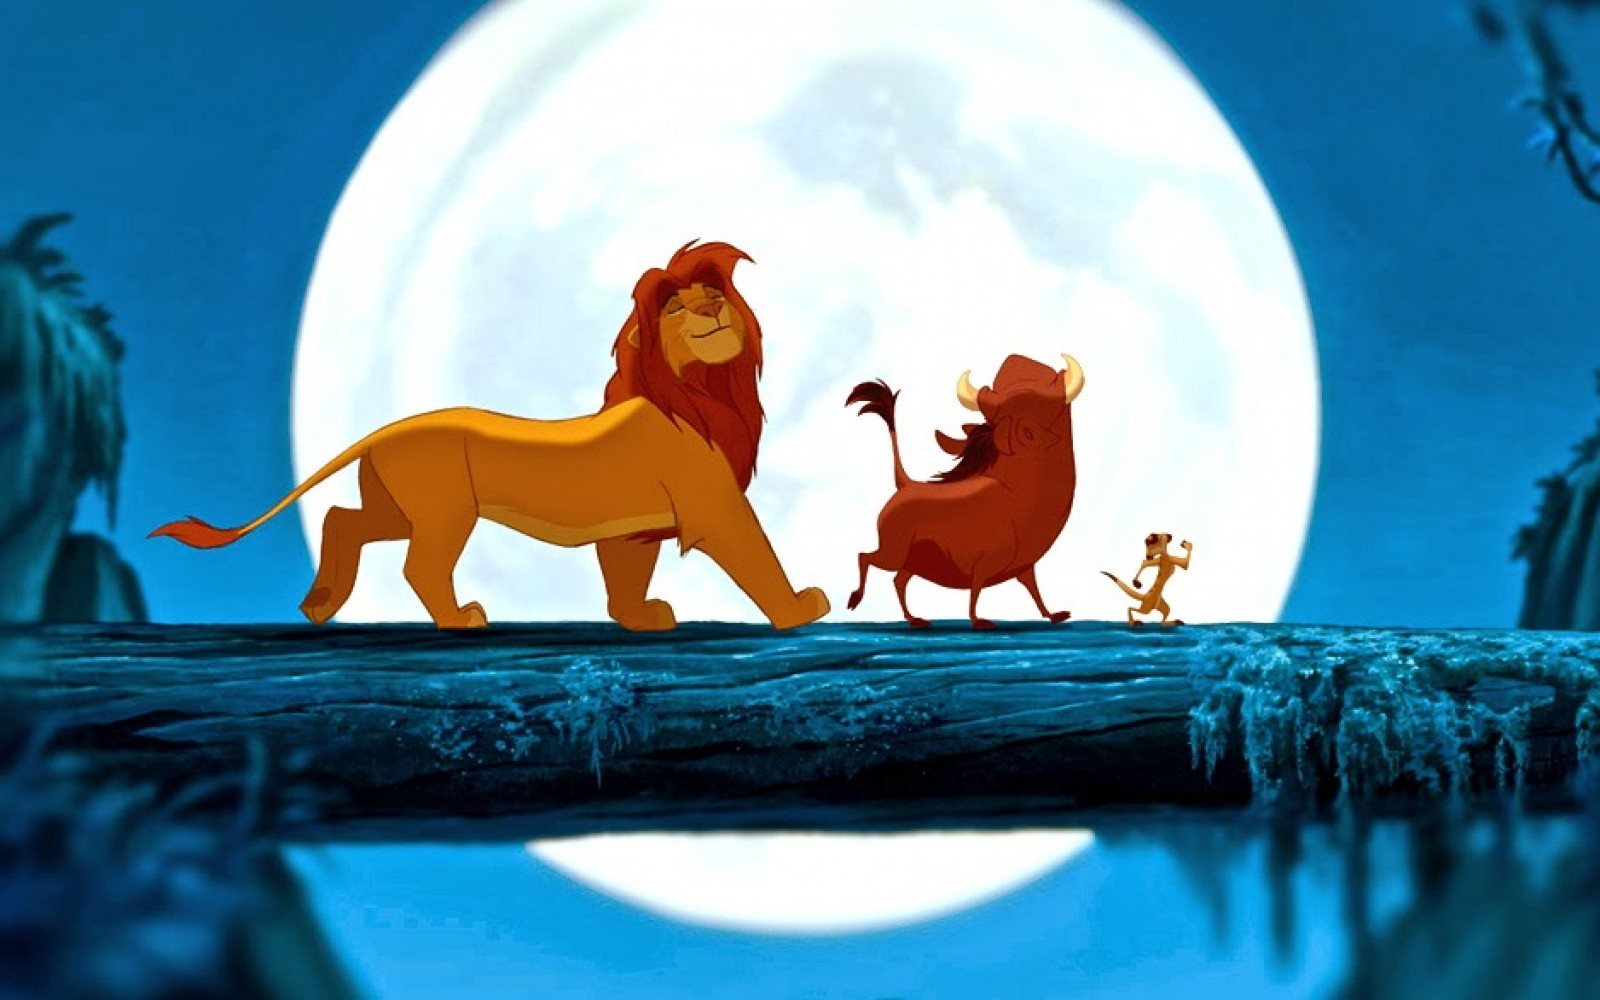 33 Inspirational Lion King Quotes That Will Help You Find Your Place In The Circle Of Life